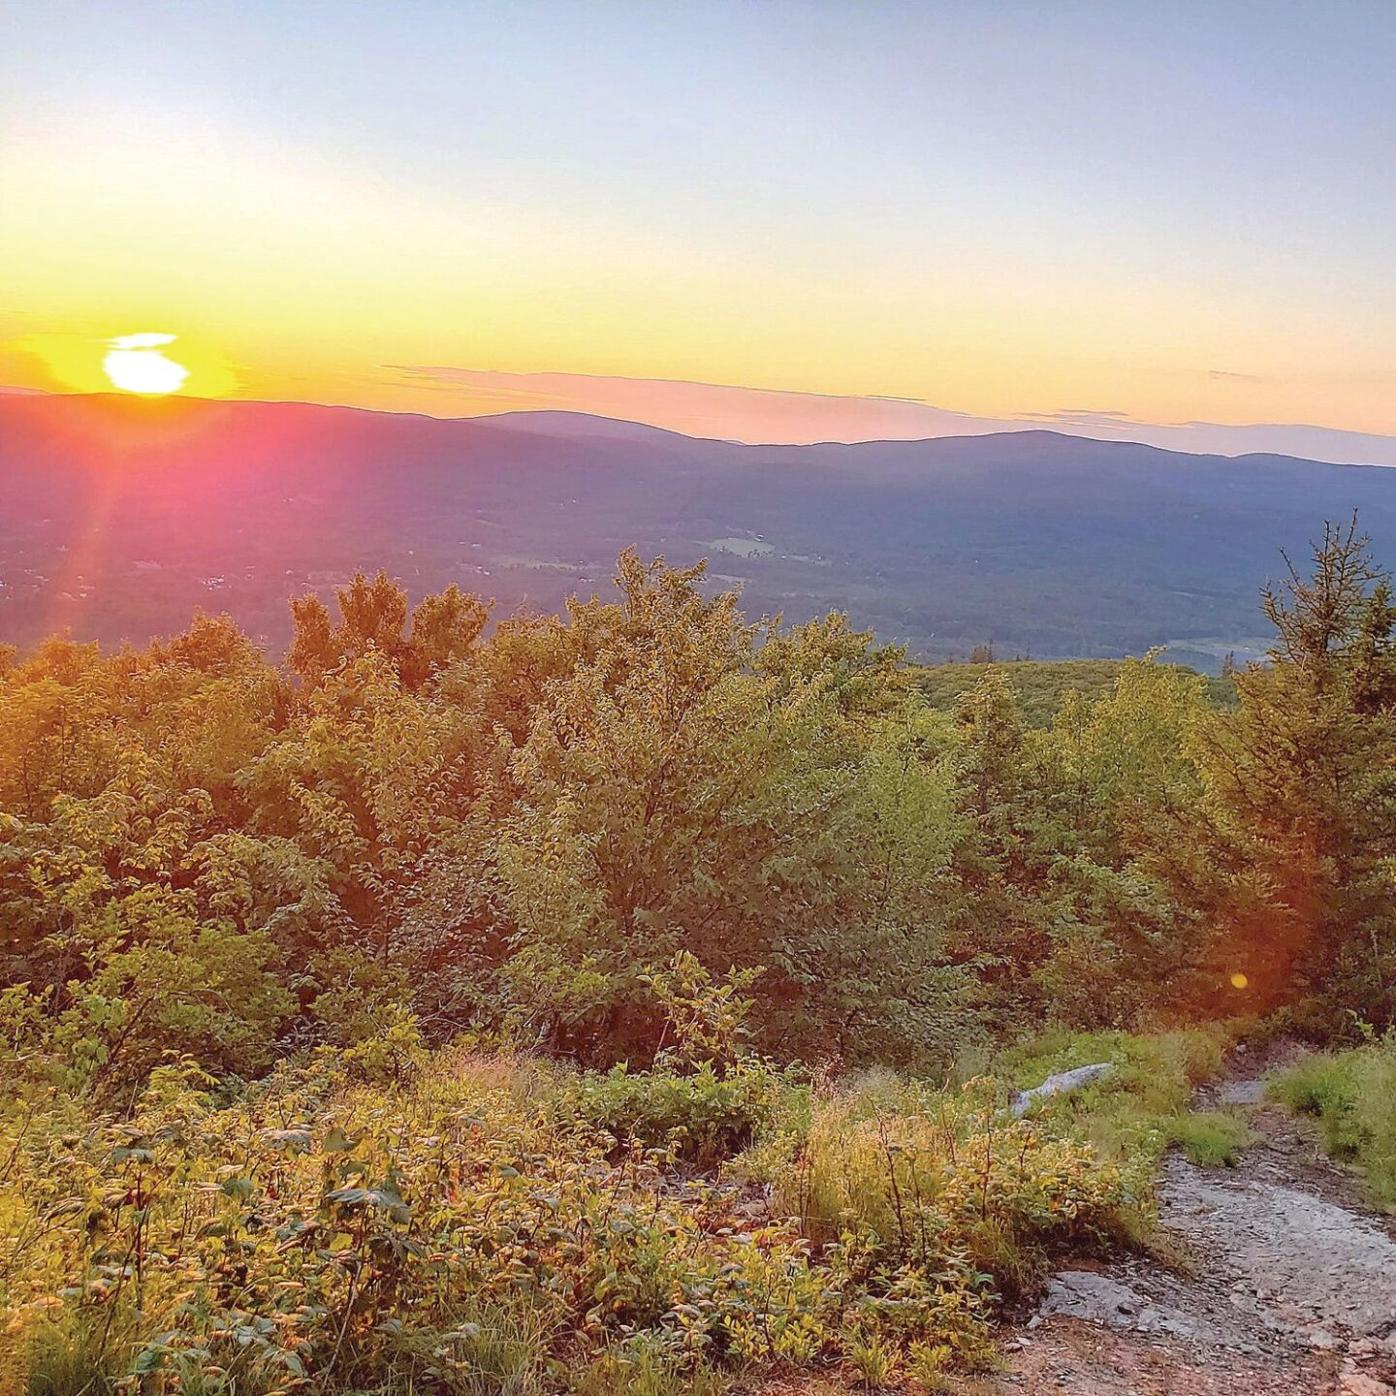 Hike Highlight | Hoosac Range Trail: Step away from your desk after a long day